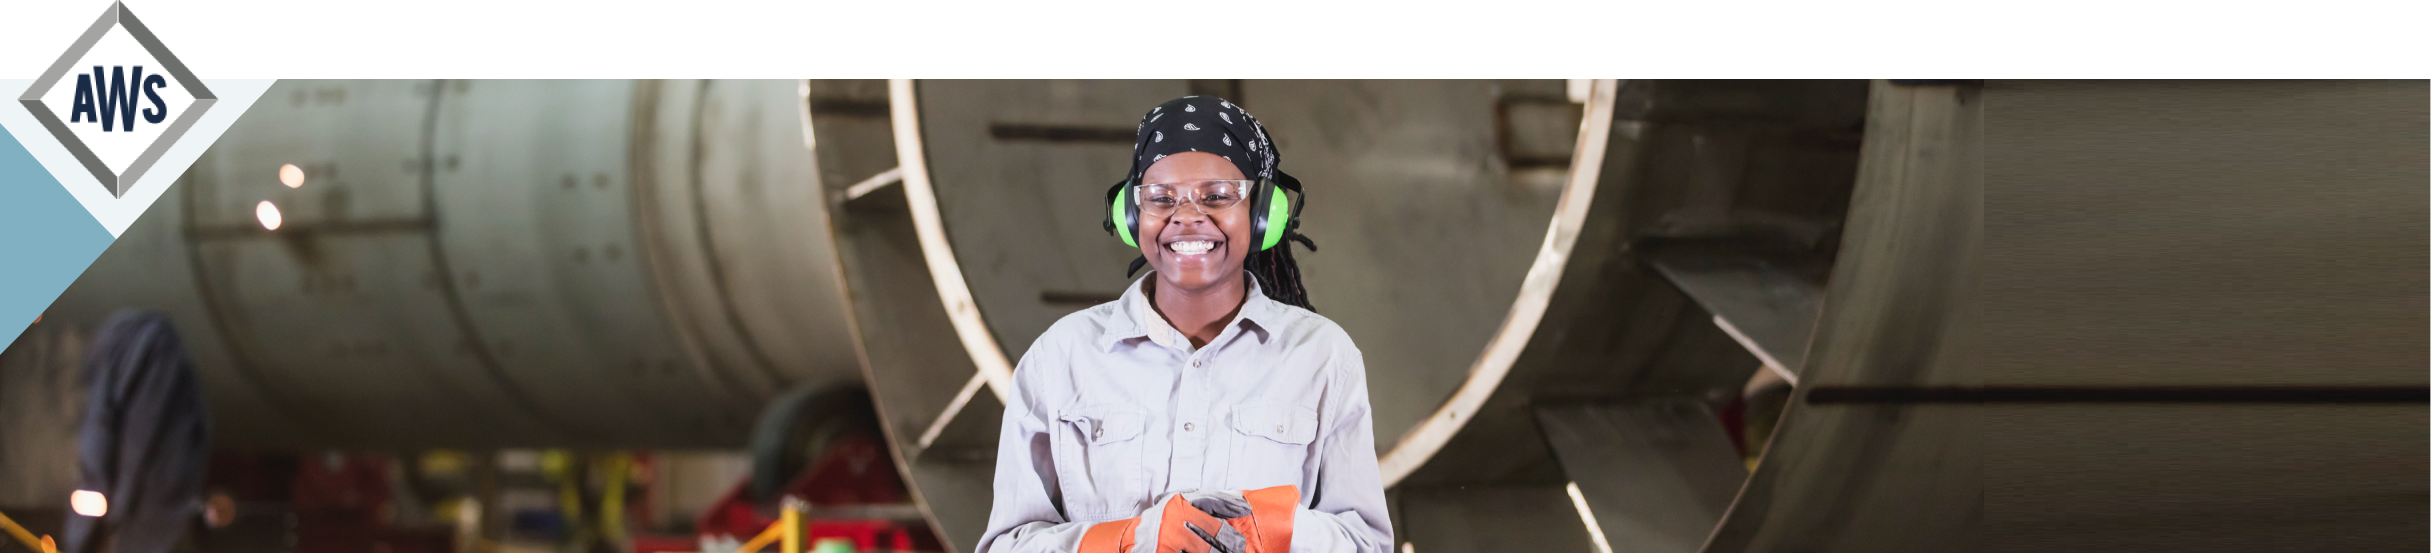 AWS Women in Welding Conference